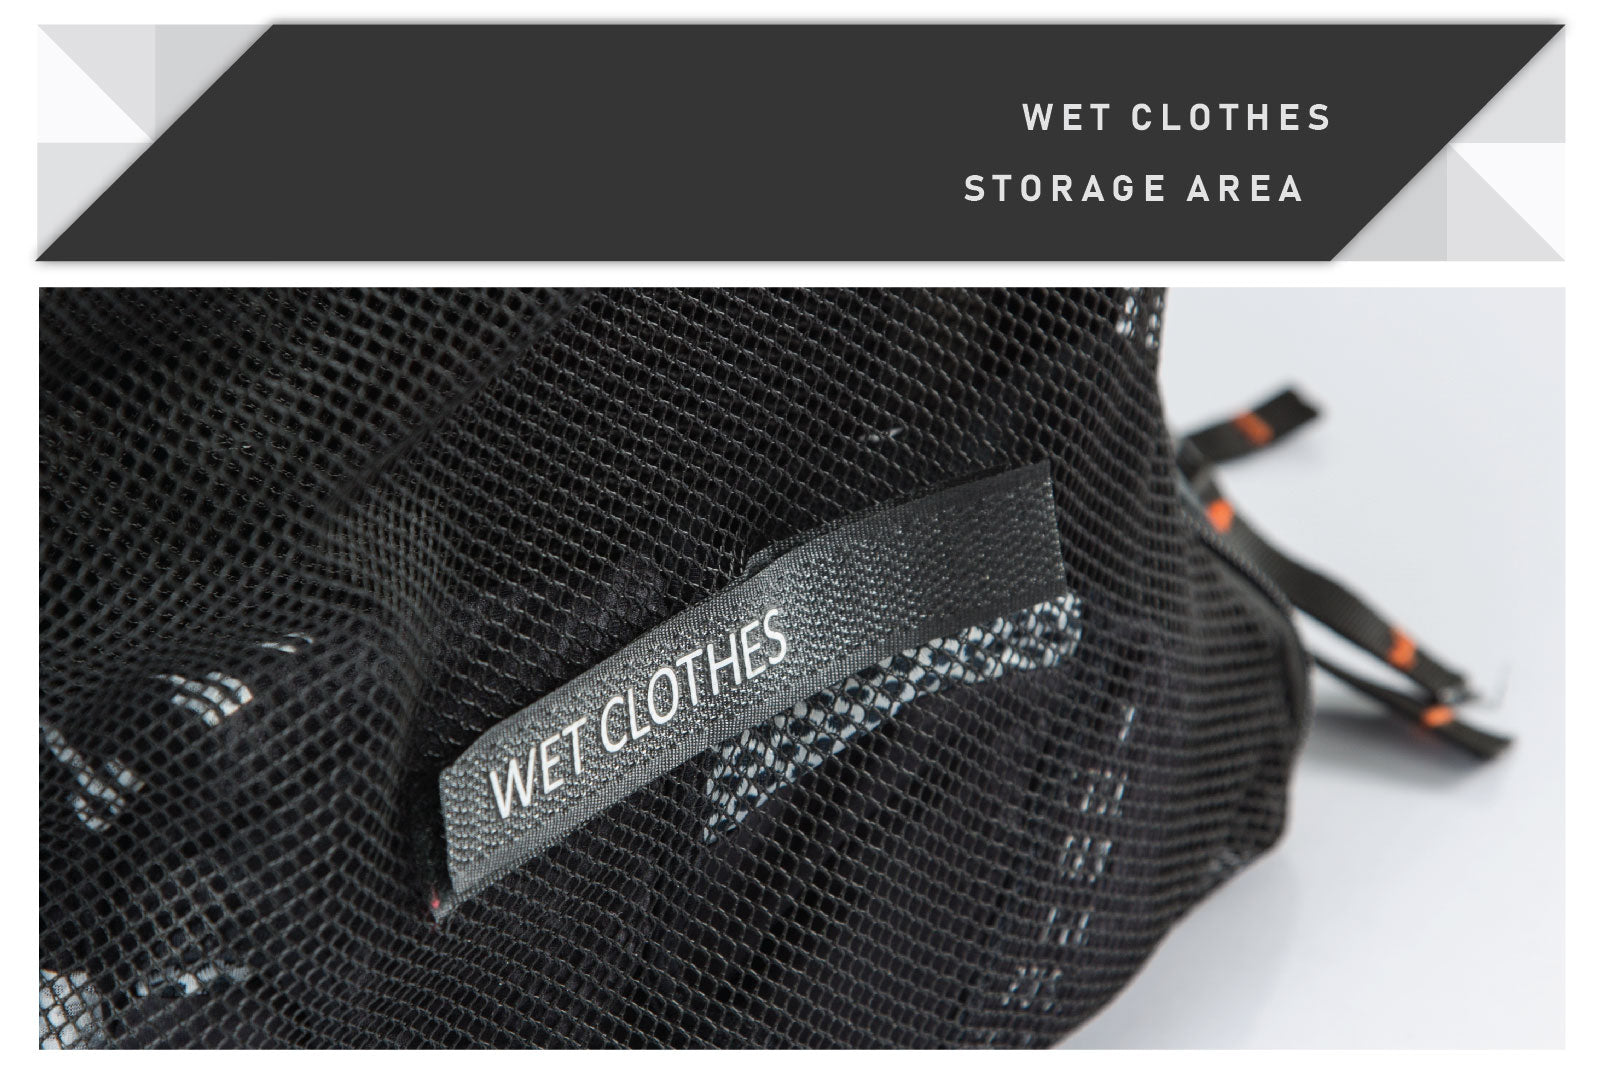 wet clothes storage area